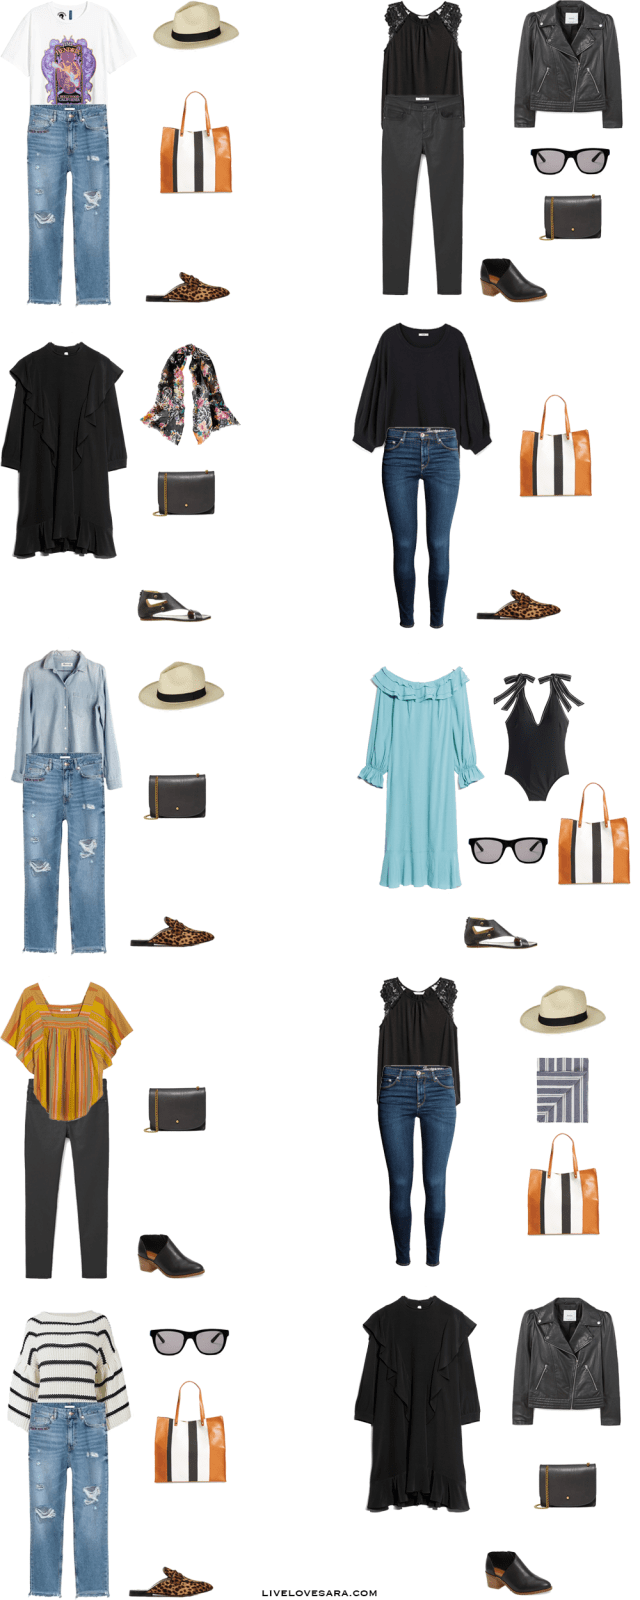 What to Pack for 10 Days in Los Angeles, California Packing Light List Outfit Options 11-20